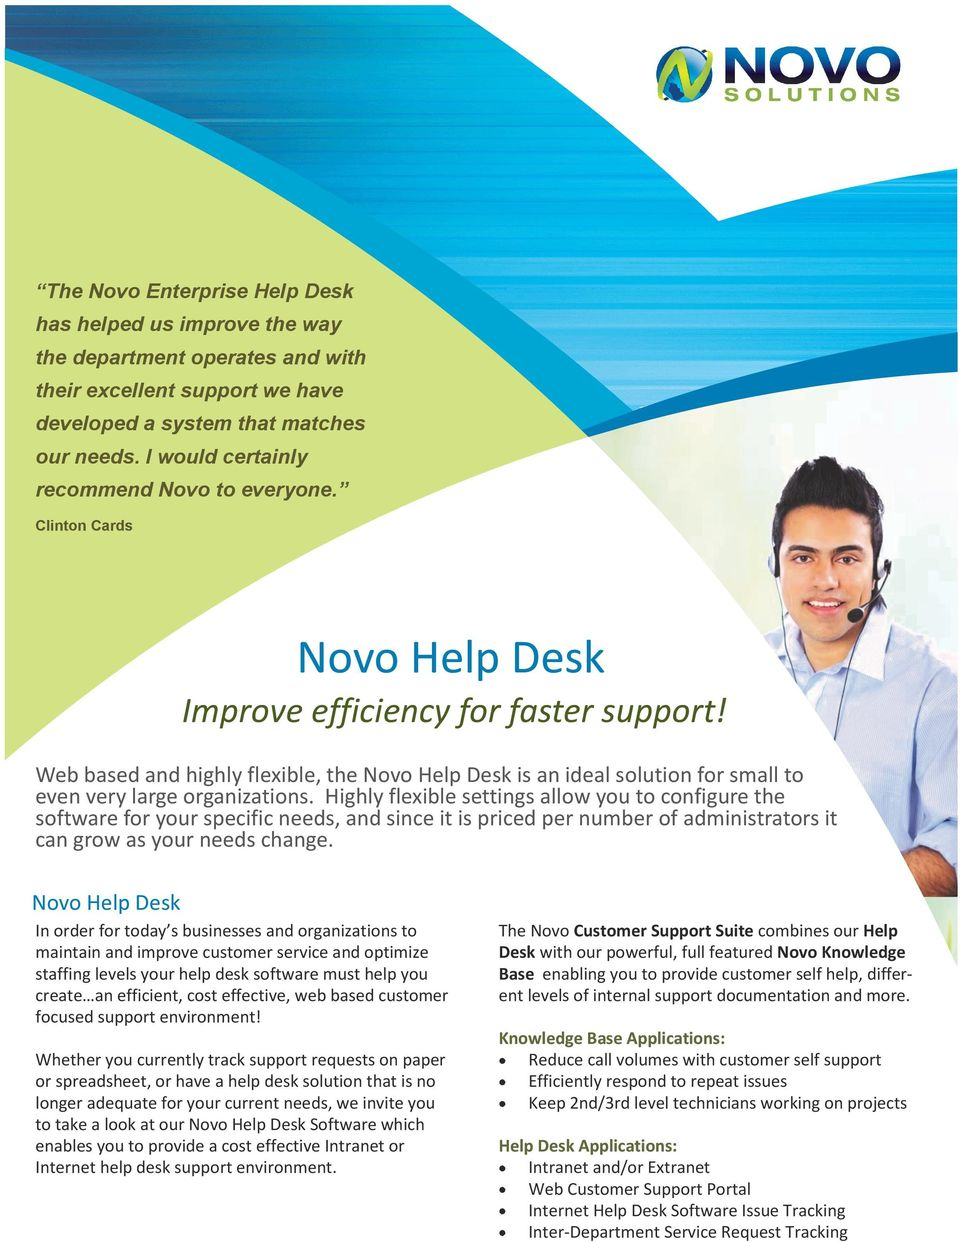 Web based and highly flexible, the Novo Help Desk is an ideal solution for small to even very large organizations.